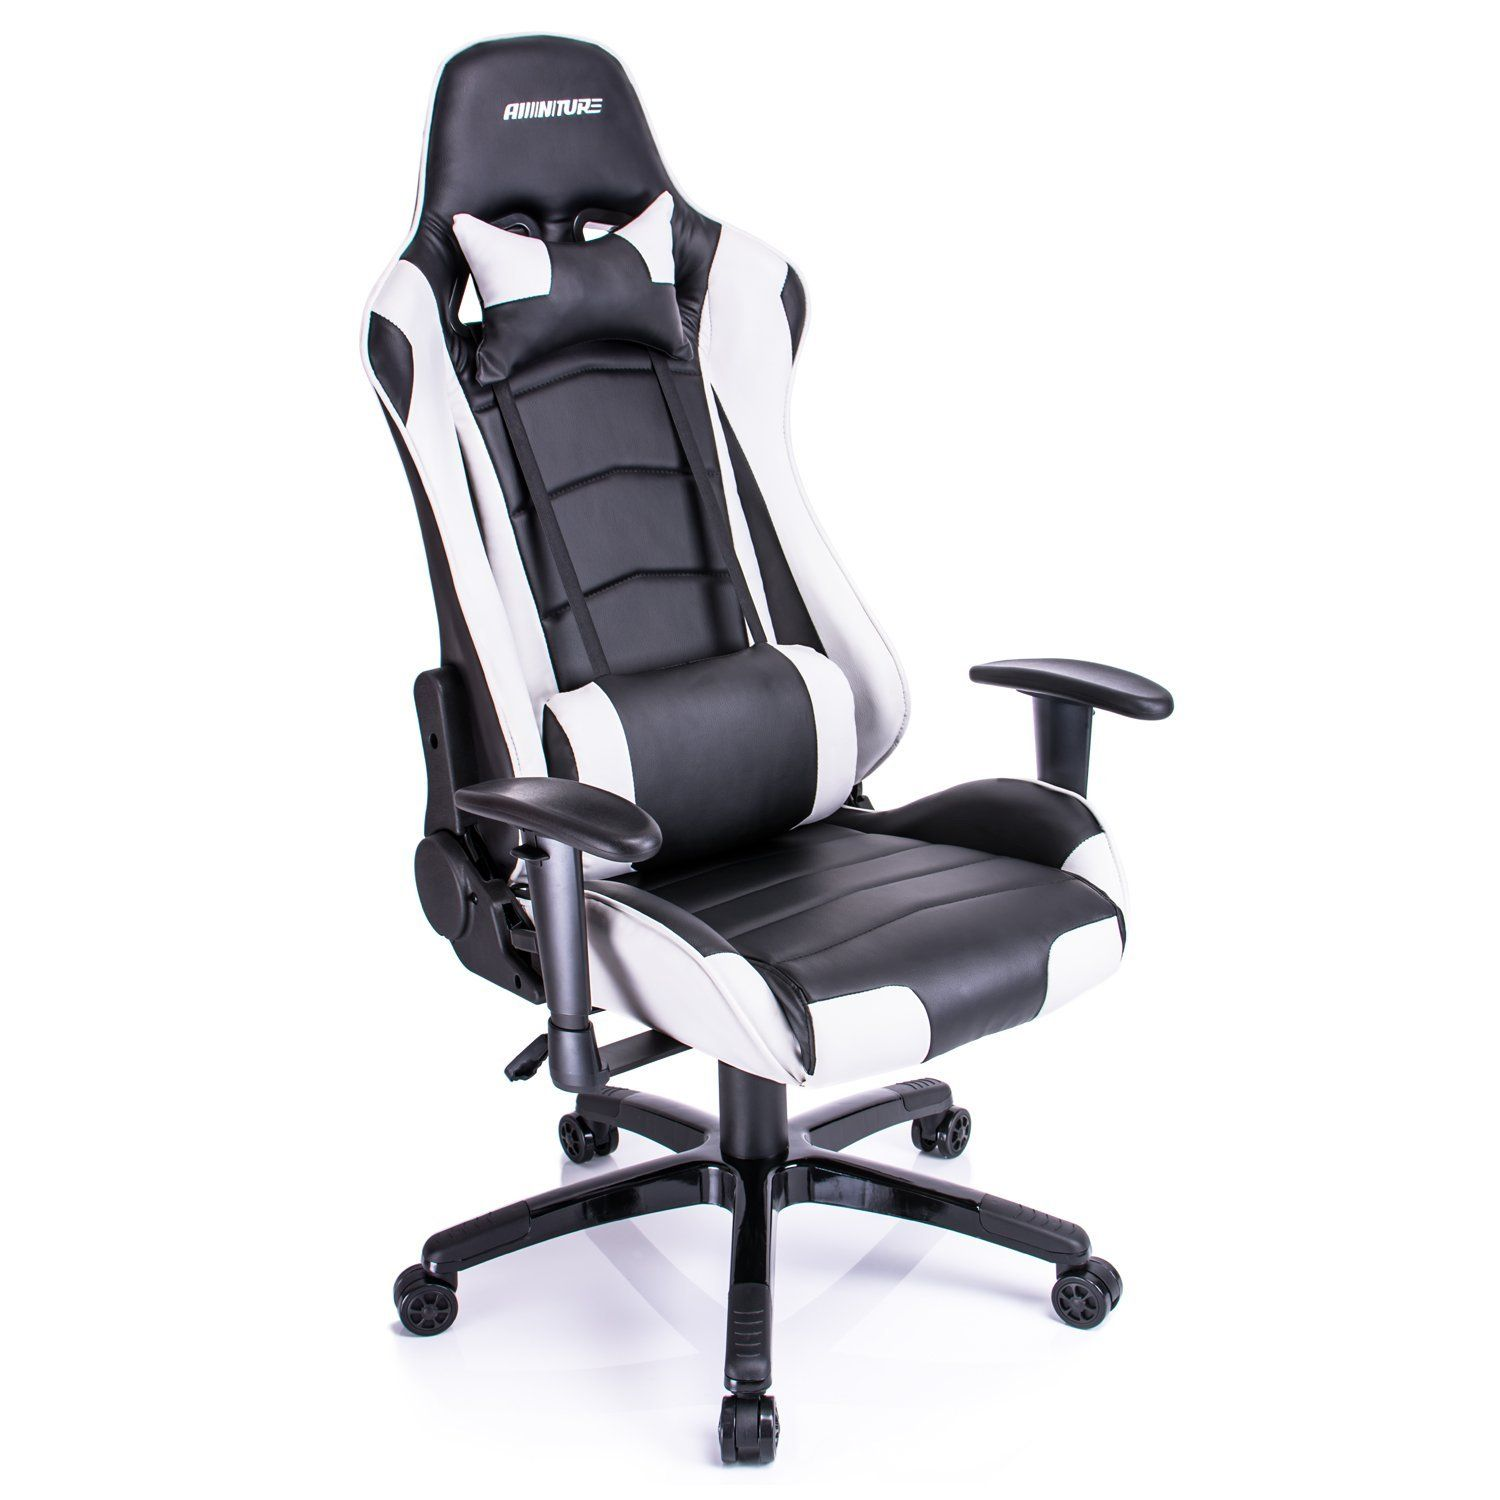 Amazon Aminitrue High back Gaming Chair Racing Style